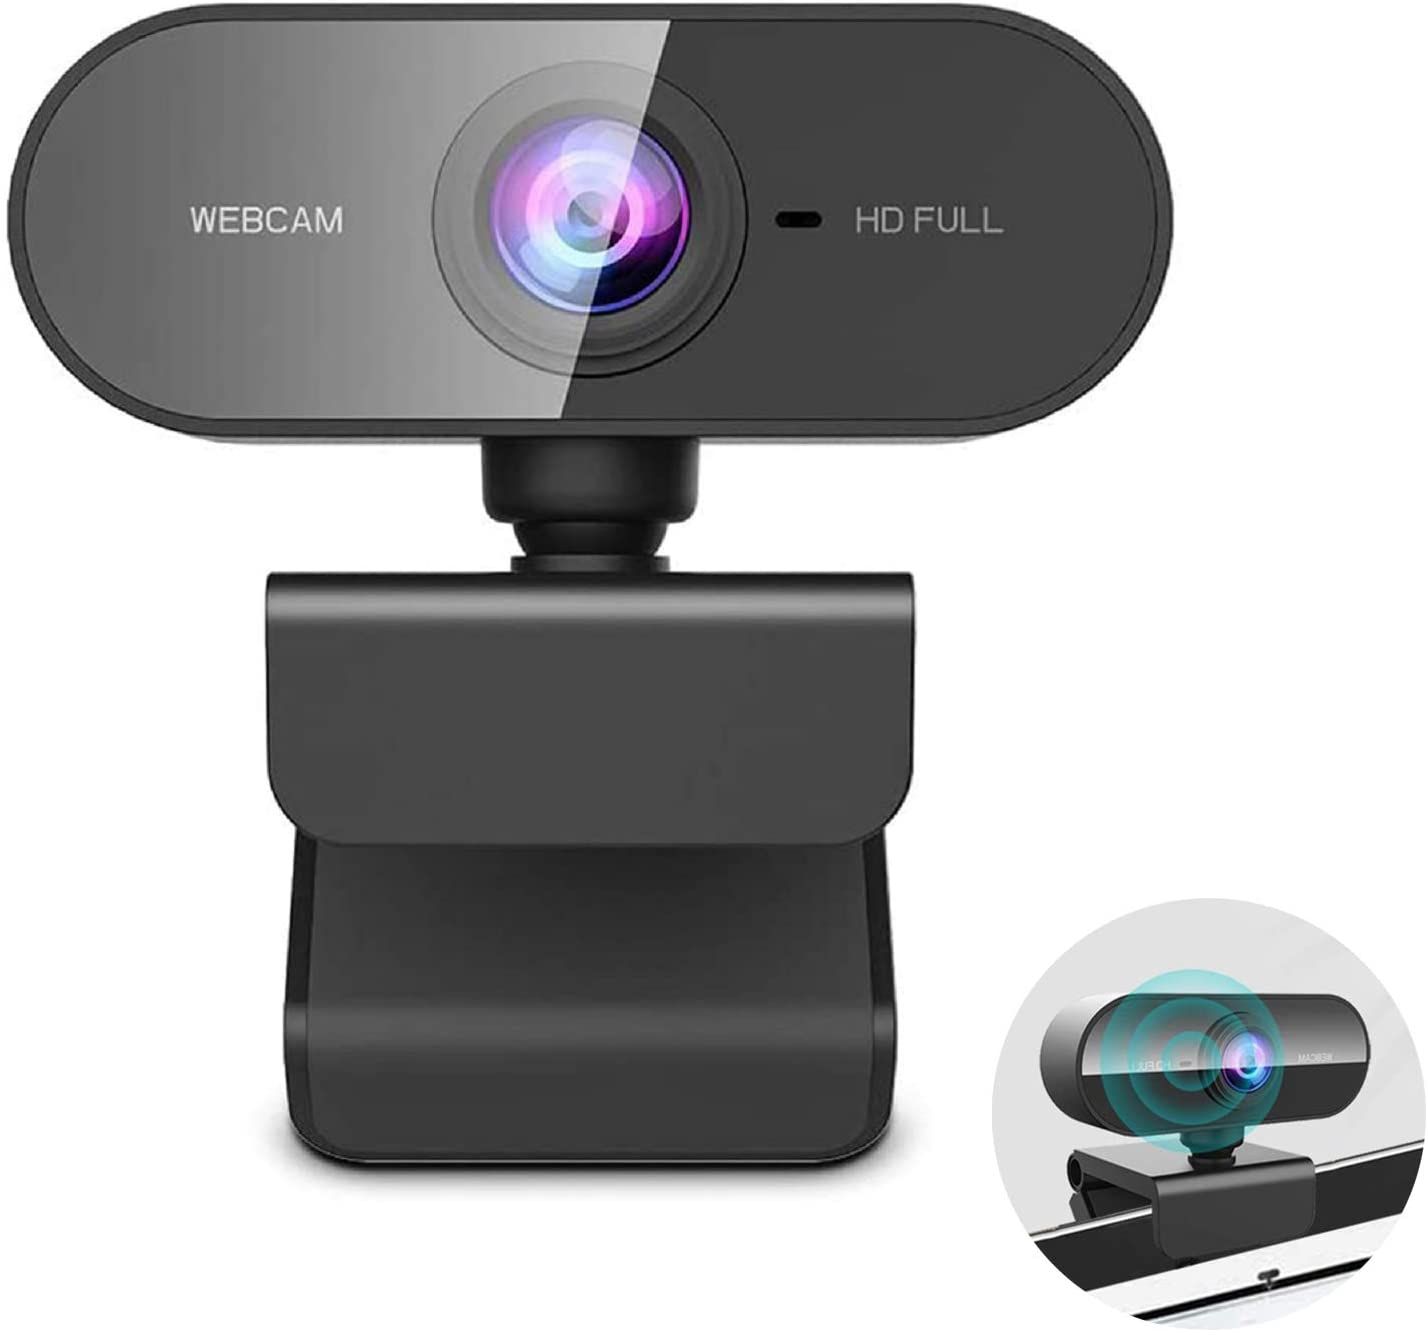 Webcam with Microphone, 1080P HD Wide Angle Web Cam, USB Web Streaming Computer Camera for Computers PC Laptop Desktop, Conference Study Video Calling, Skype